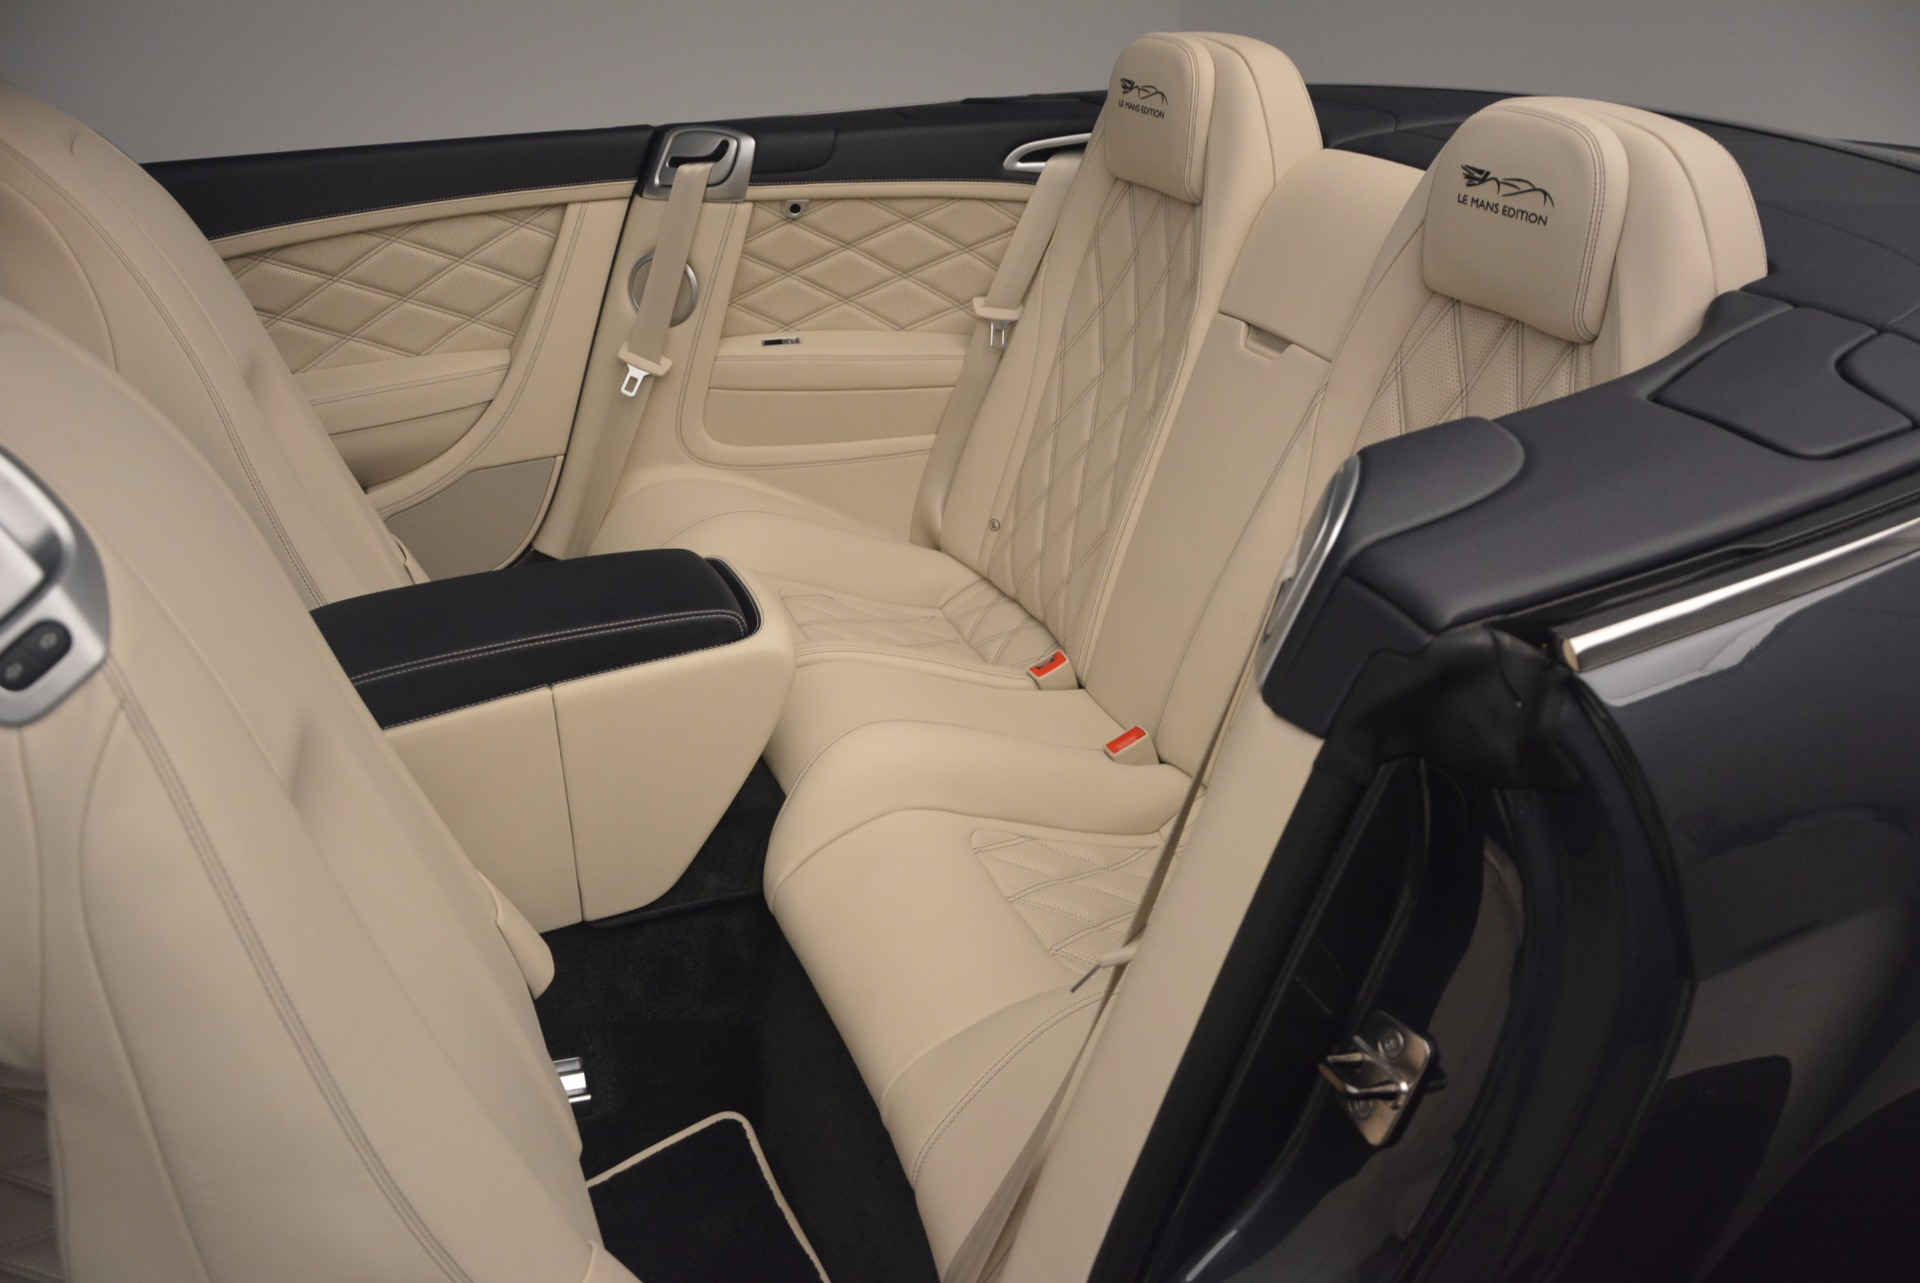 Used 2013 Bentley Continental GT V8 Le Mans Edition, 1 of 48 For Sale In Westport, CT 1288_p45